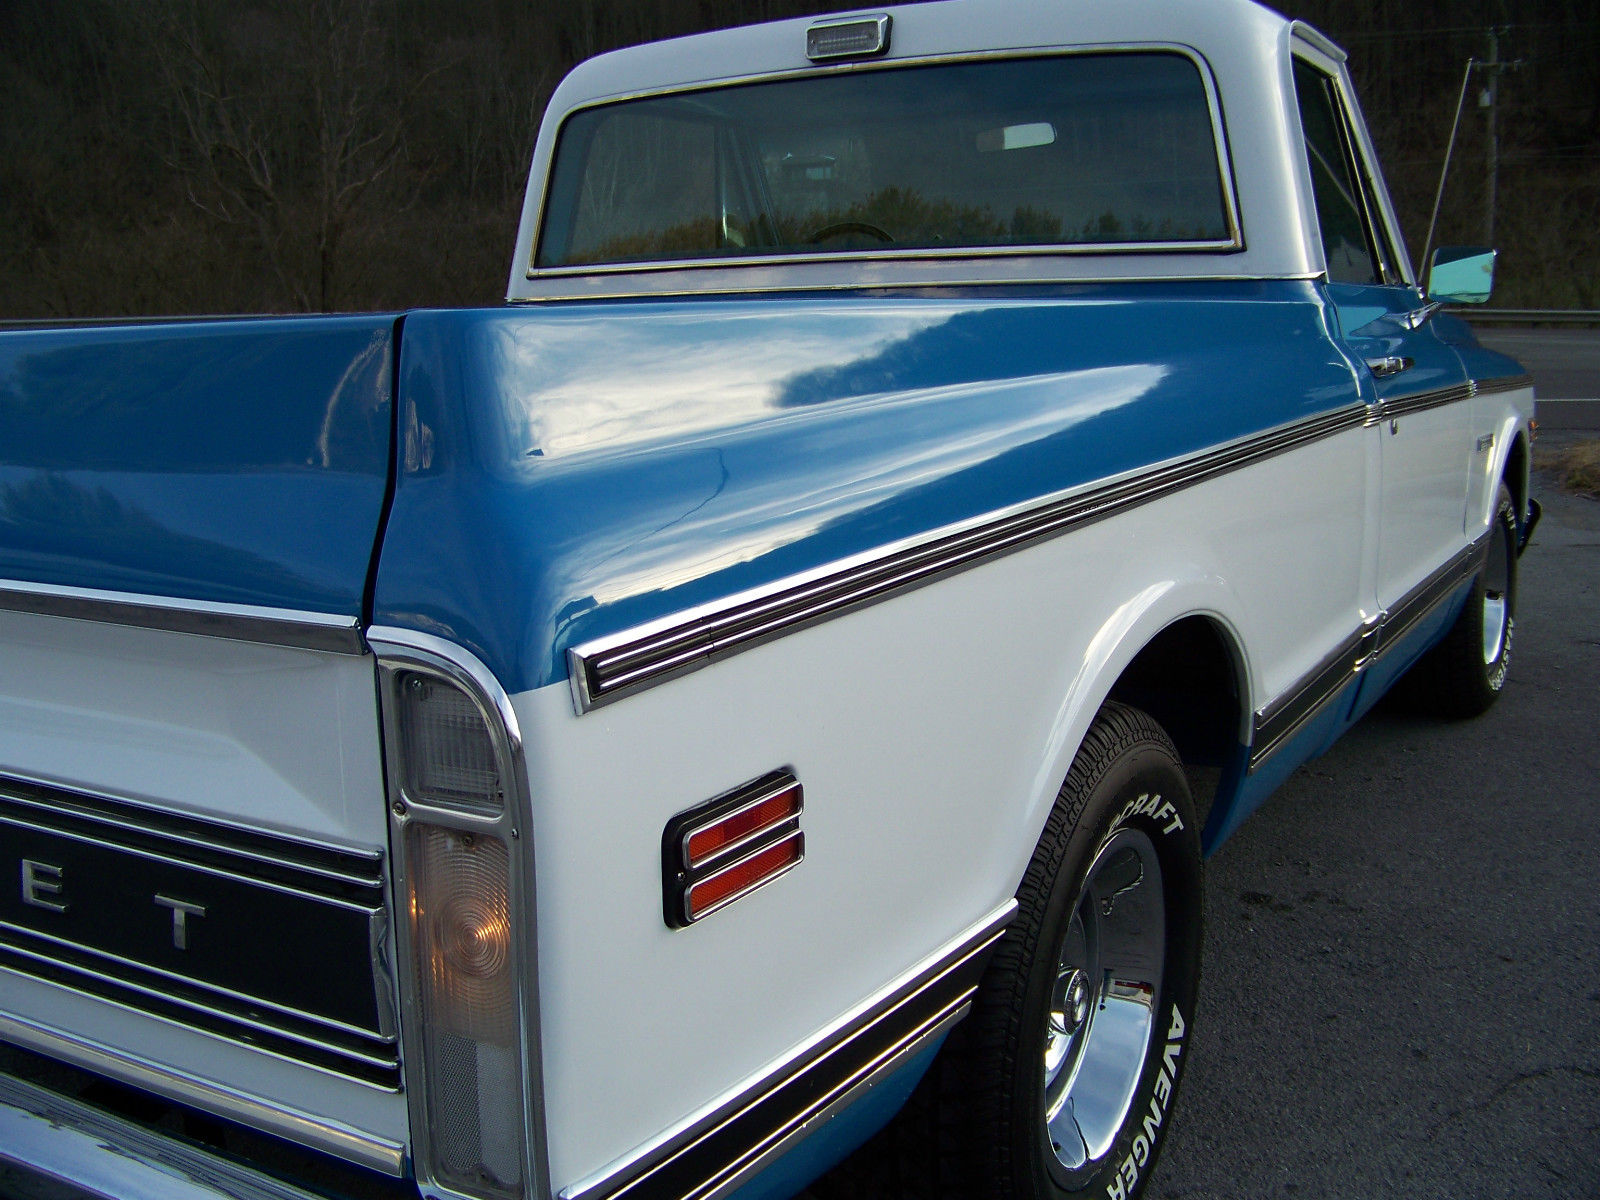 Ad C A Dfb Abfaad C E Old Trucks Chevy Trucks moreover Chev in addition Chevyc Swb K Gallery likewise  further C A A E D B E B Bbc Lowered Trucks Wheels. on 1972 c10 chevy truck